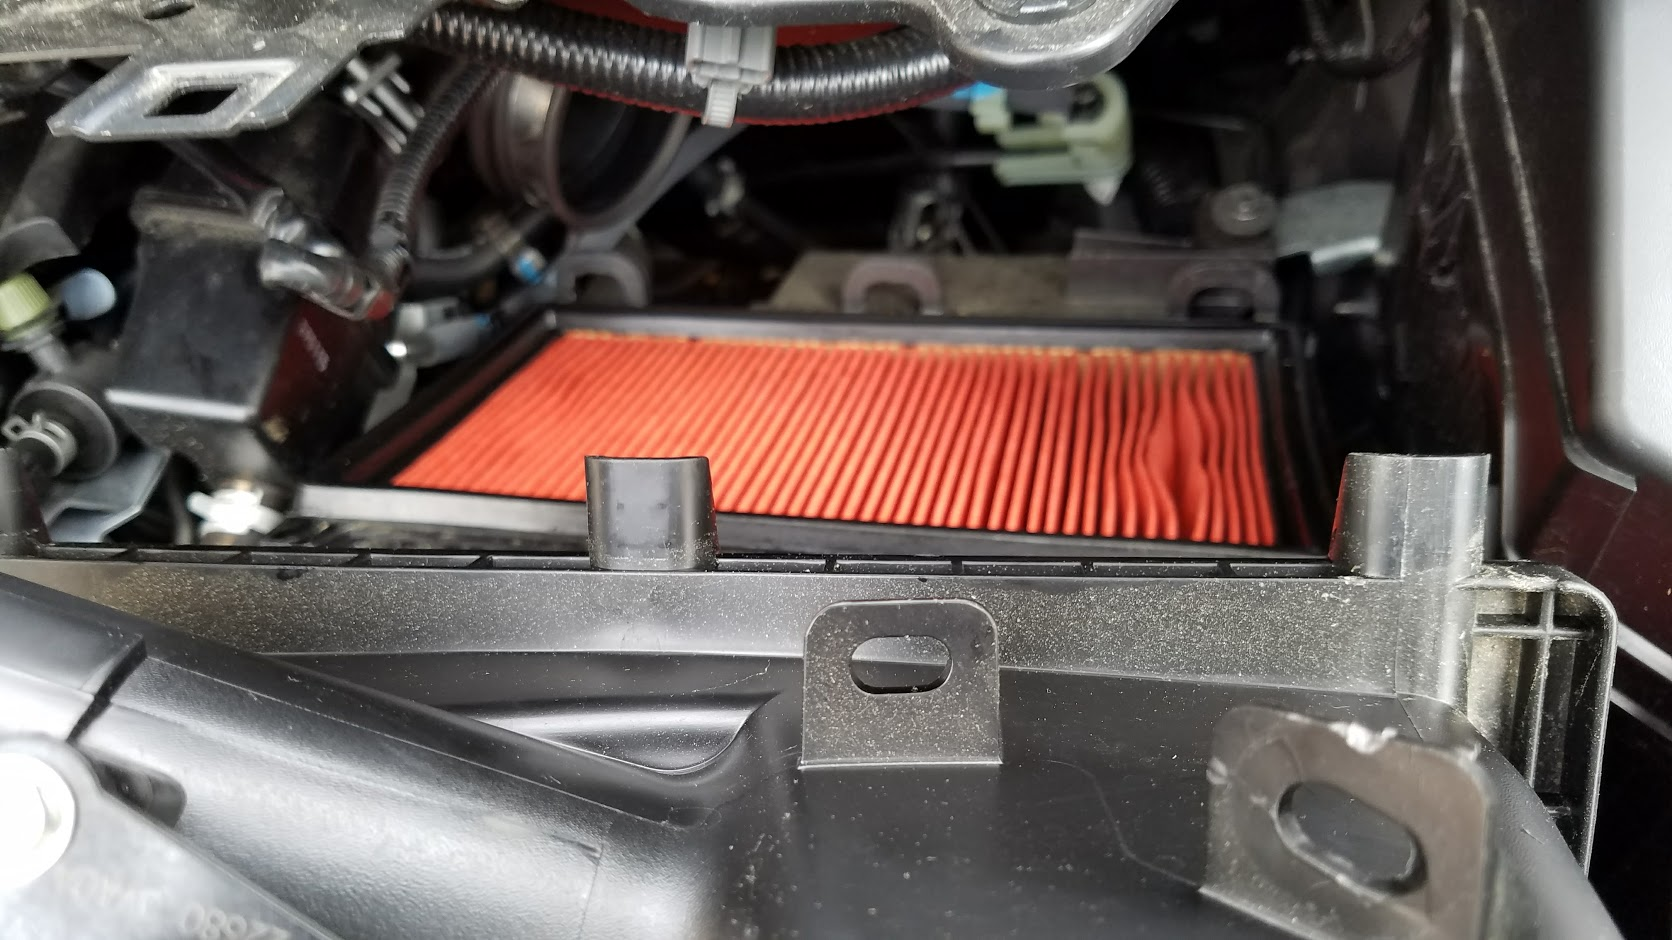 new air filter installed chassis